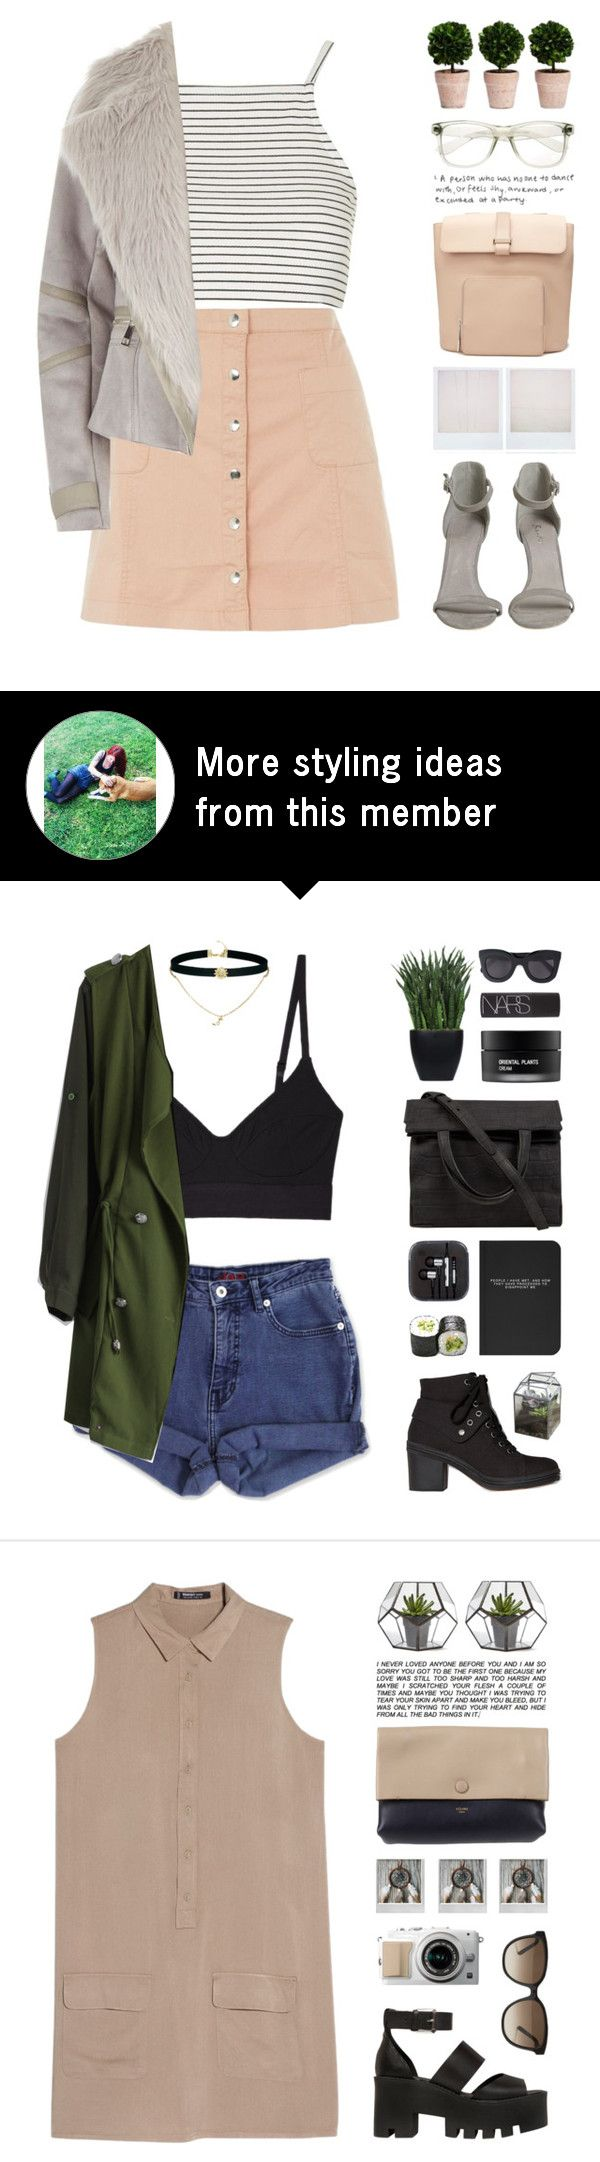 """""""Lori"""" by chelseapetrillo on Polyvore featuring мода, Innocence, Topshop, River Island и Whistles"""